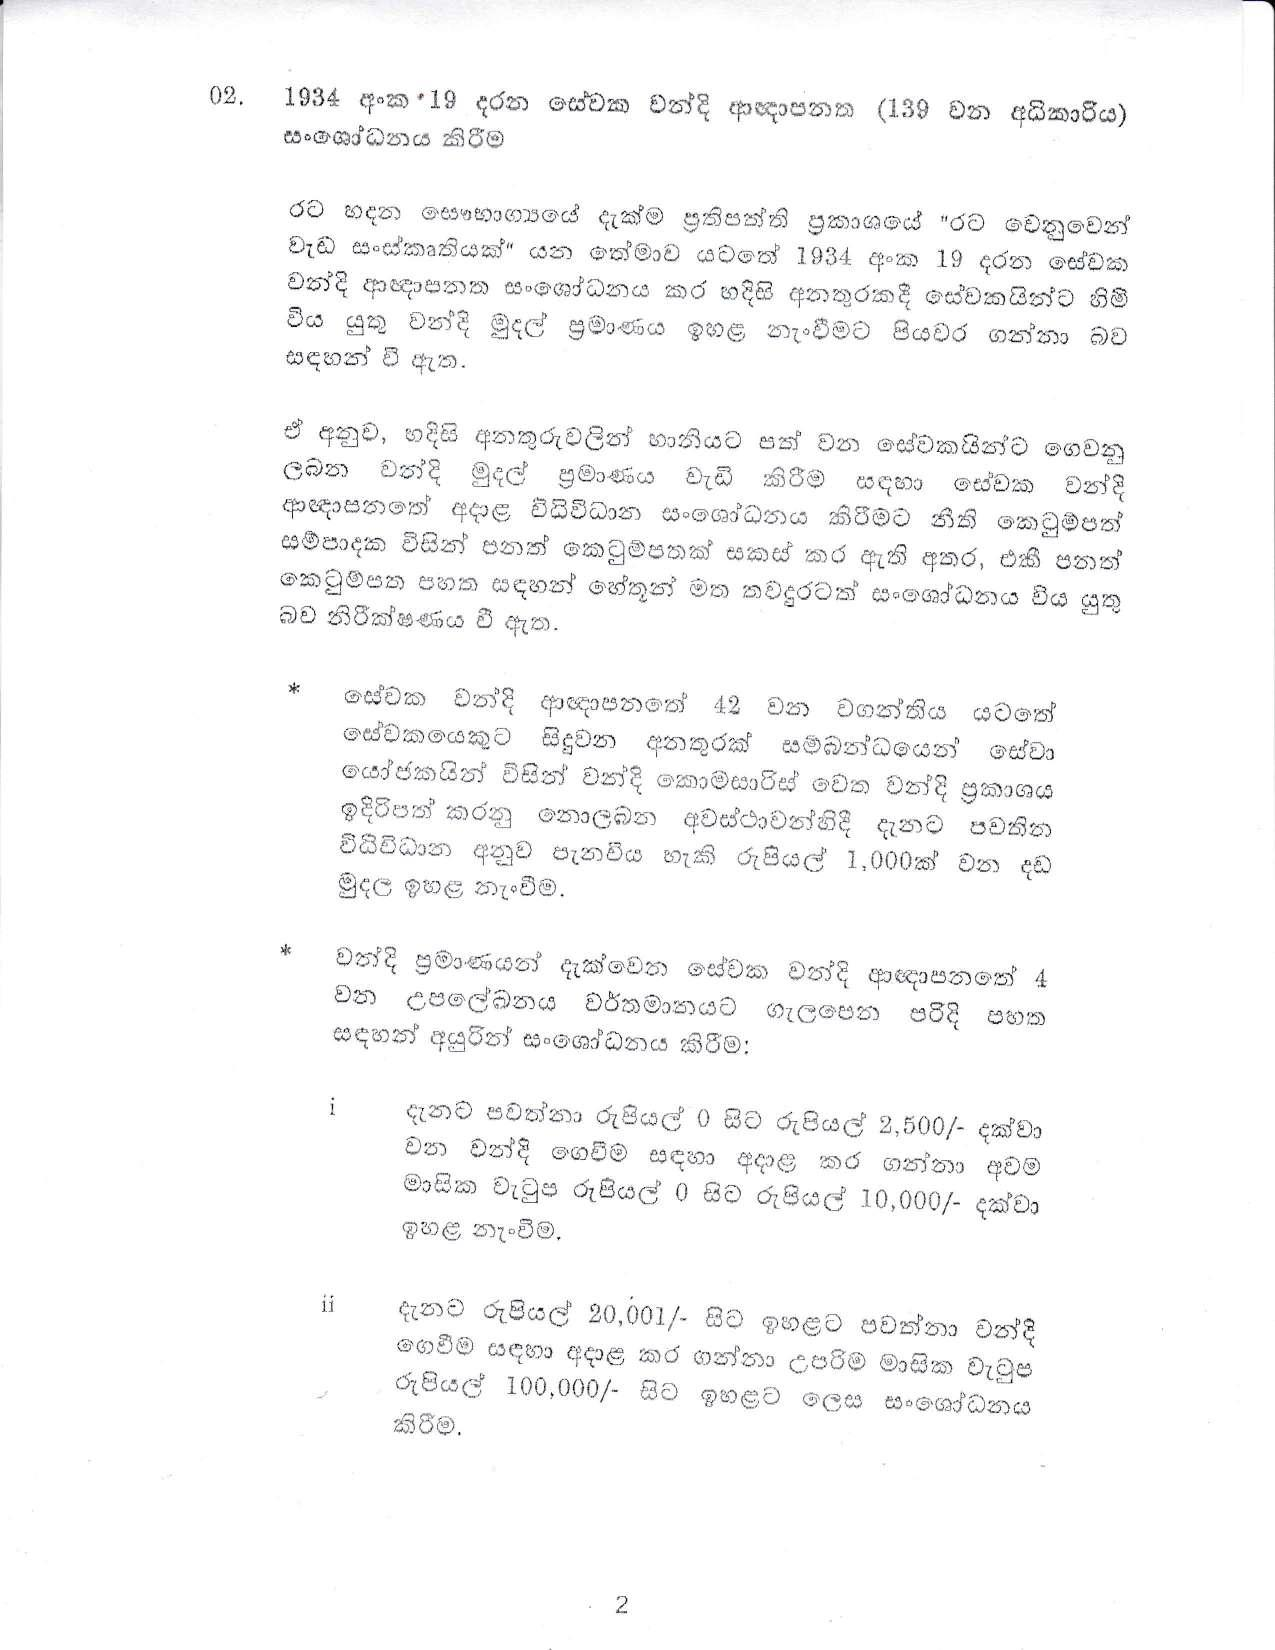 Cabinet Decision on 05.10.2020 compressed page 002